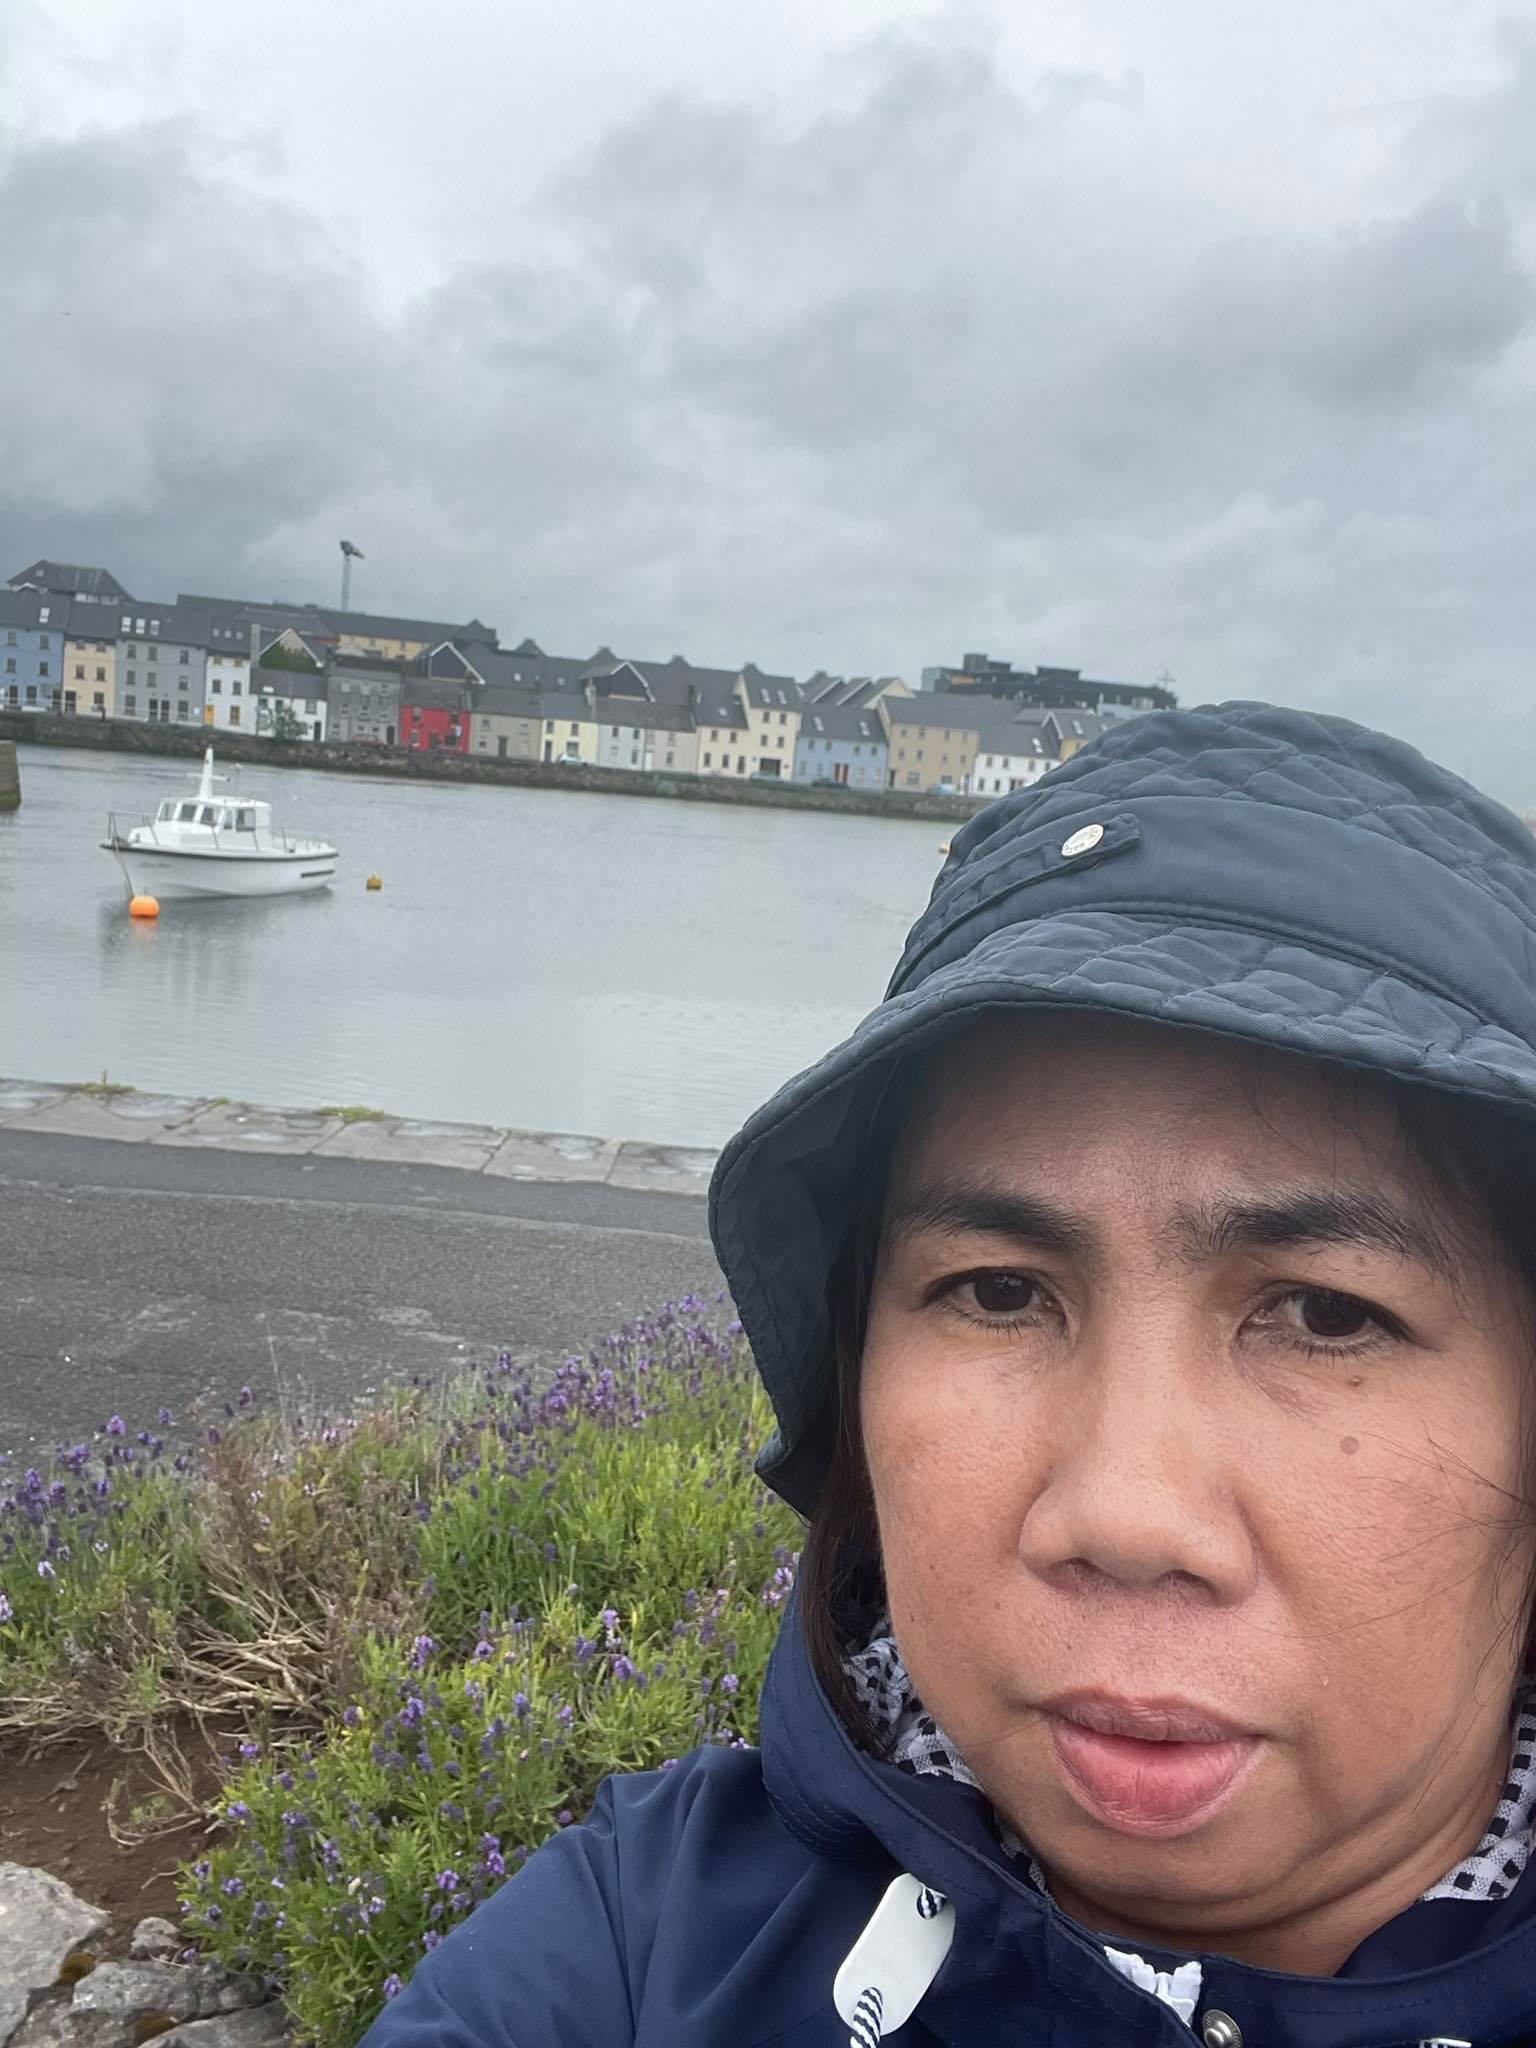 A woman in front of a harbour in a raincoat